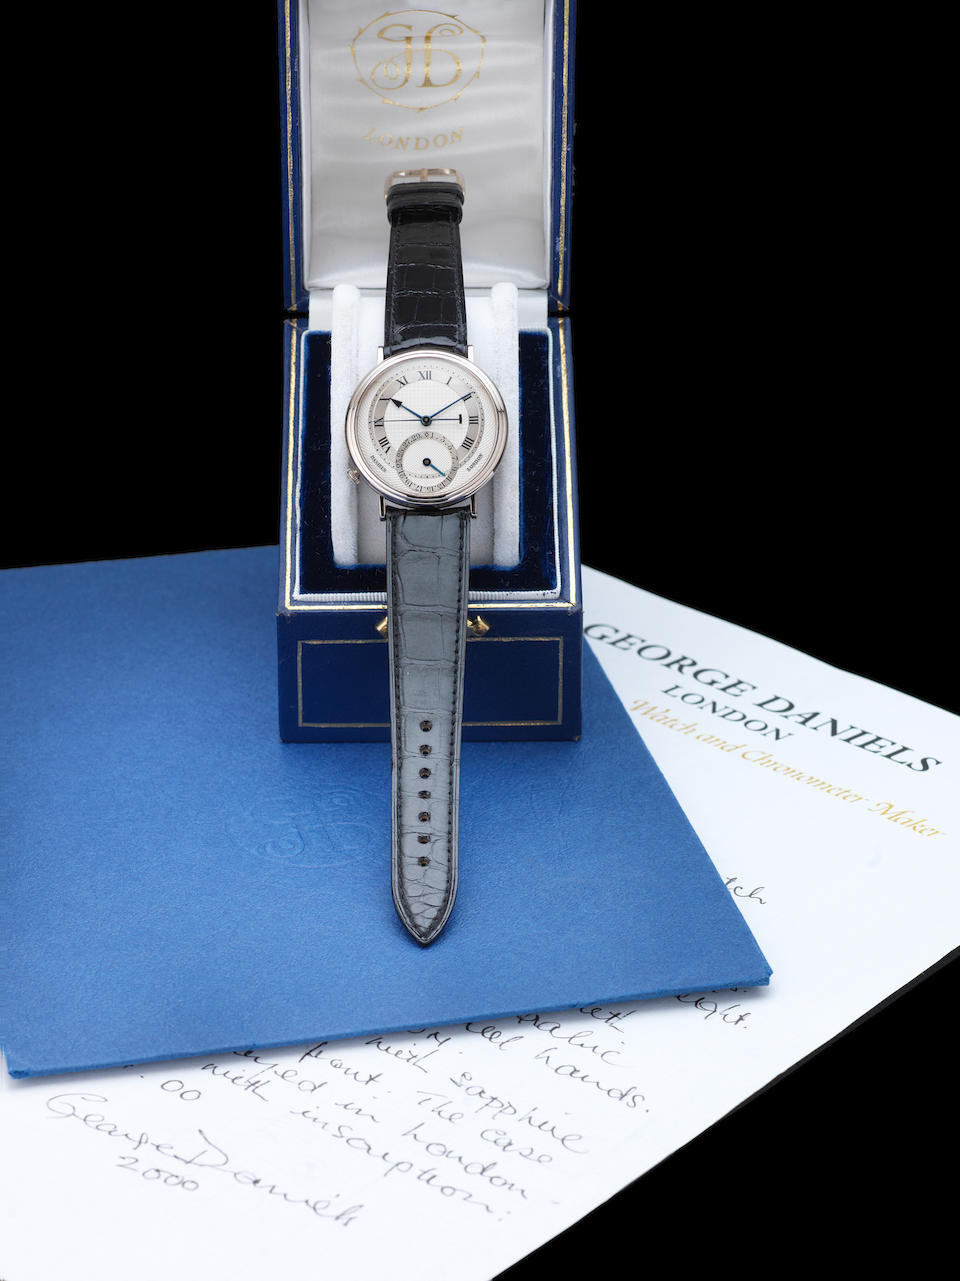 George Daniels. A very fine and rare 18ct white gold automatic calendar centre seconds wristwatch, one of only seven made in white gold, together with original box and receipts, correspondence and 2006 Retrospective Exhibition catalogue signed by Dr George DanielsMillennium, Made in 2000 and Sold November 22nd 2000